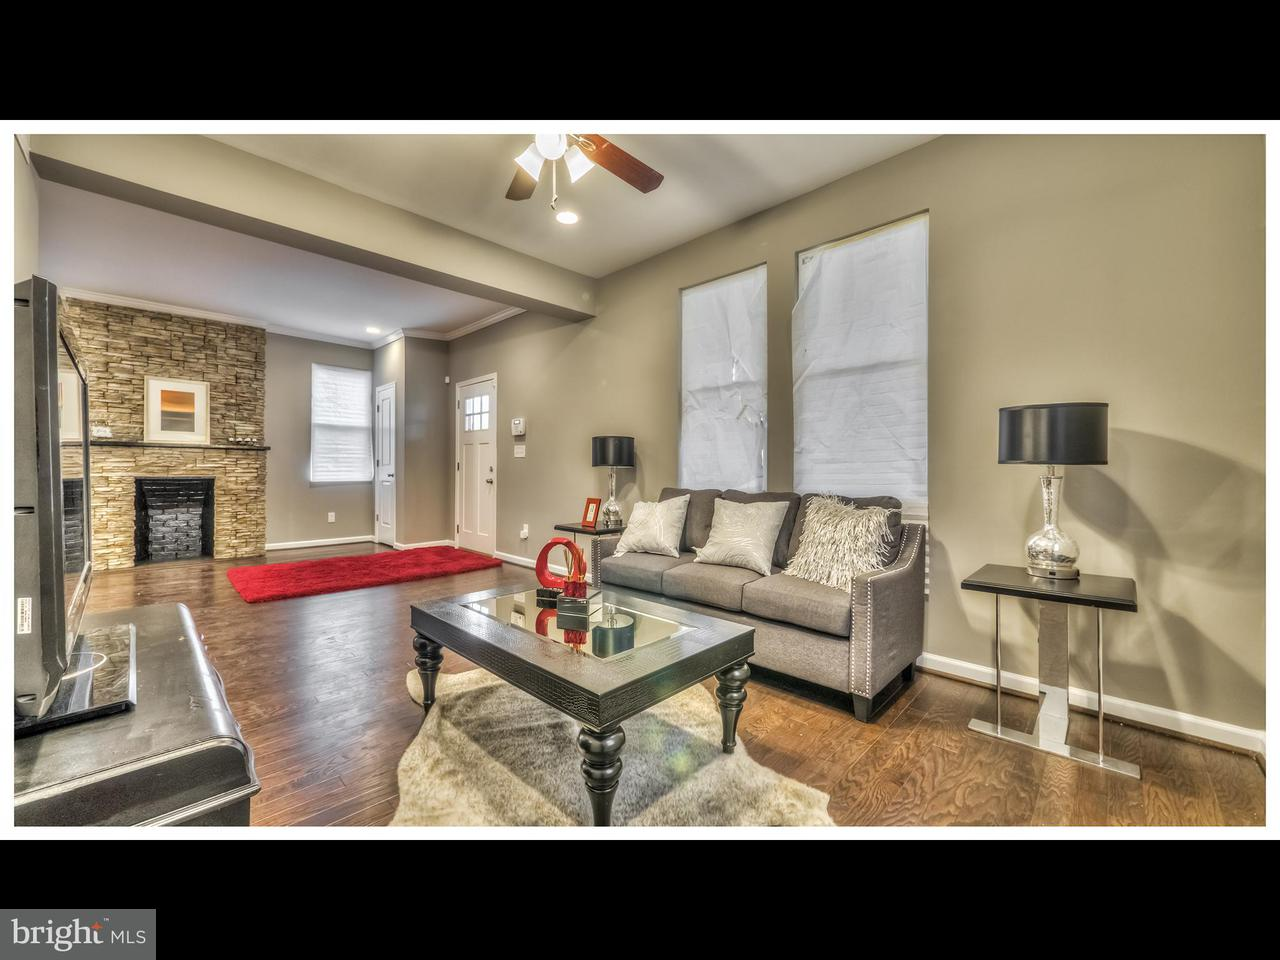 Single Family for Sale at 4504 Penhurst Ave Baltimore, Maryland 21215 United States